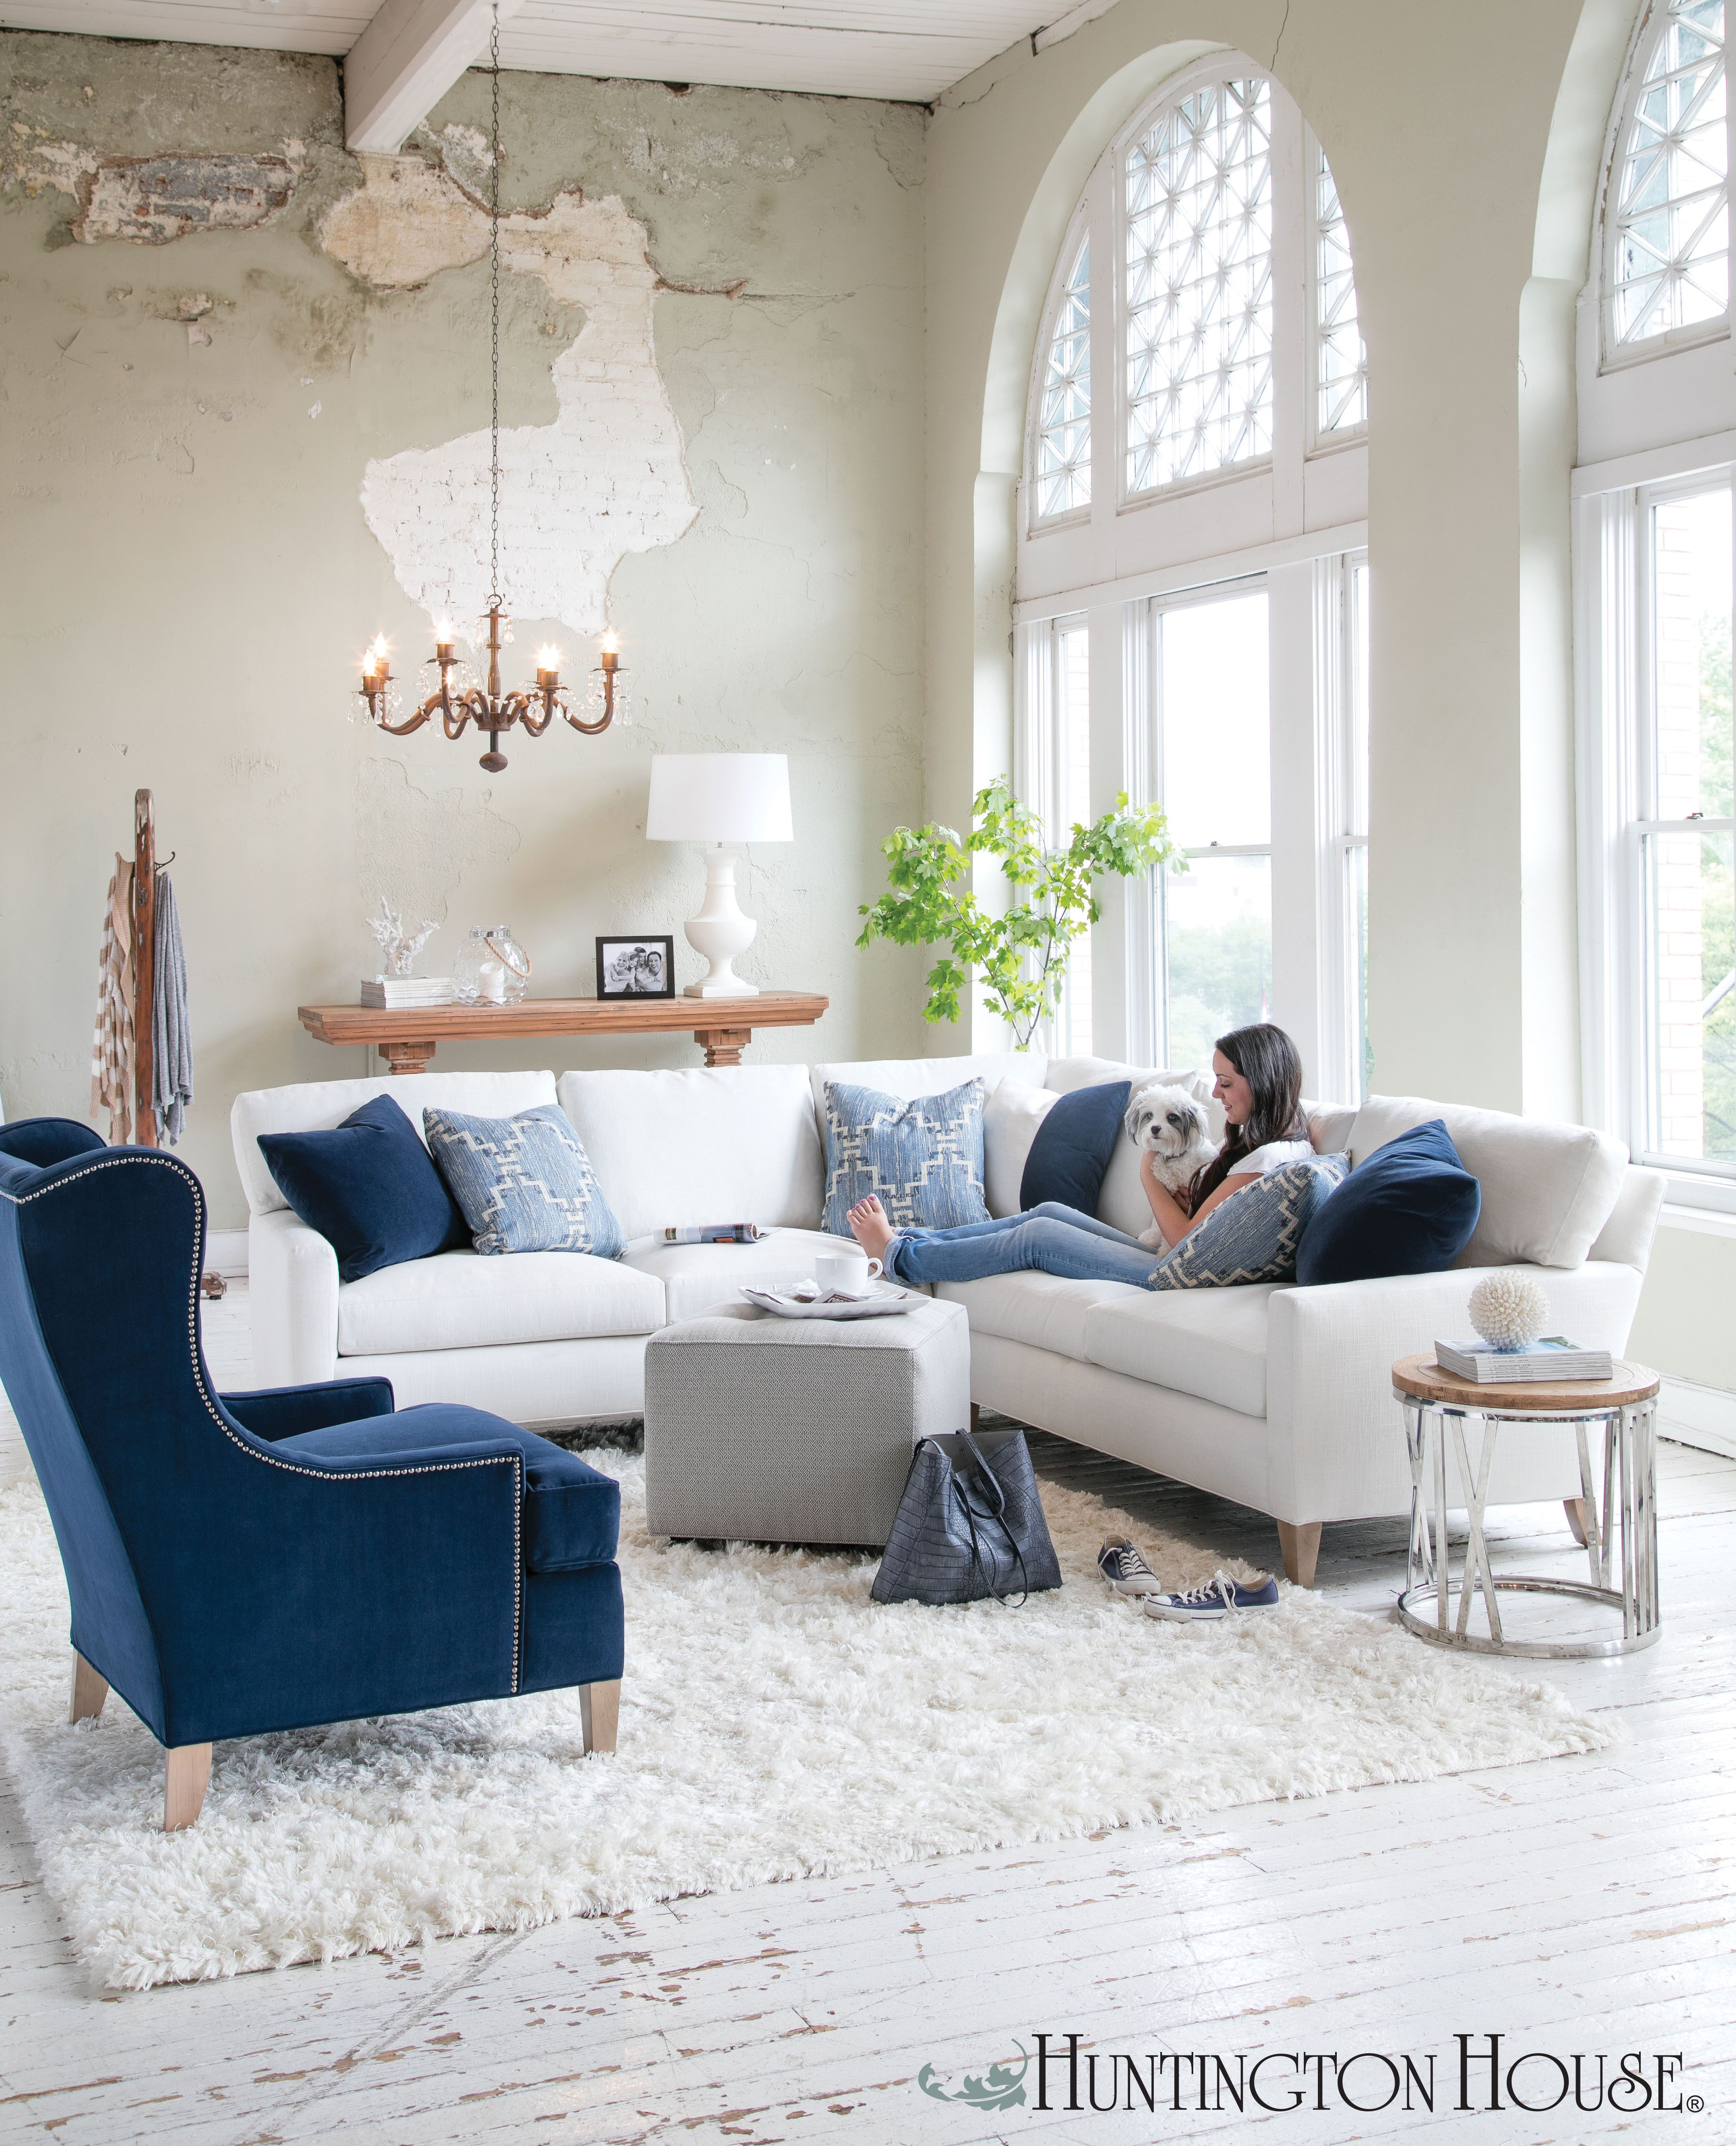 You Can Finally Have That White Sofa Using Soft Stain Resistant Crypton Home Fabrics From Huntingt White Sofa Living Room Living Room Sofa White Fabric Sofa